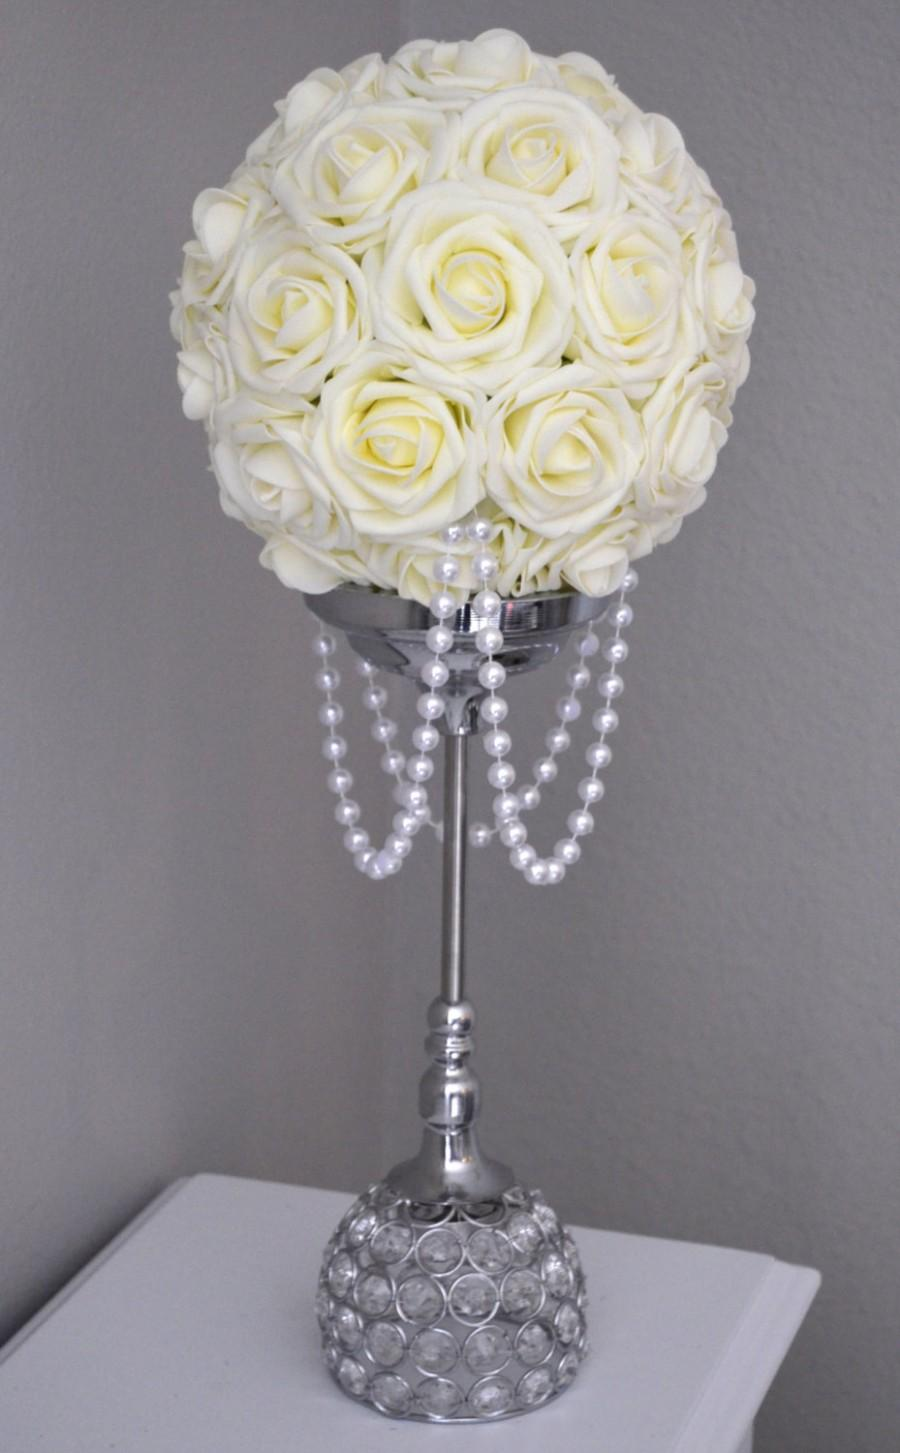 Hochzeit - IVORY Flower Ball With DRAPING PEARLS. Wedding Decor, Bridal Shower,  Flower Girl. Choose Your Rose Color.